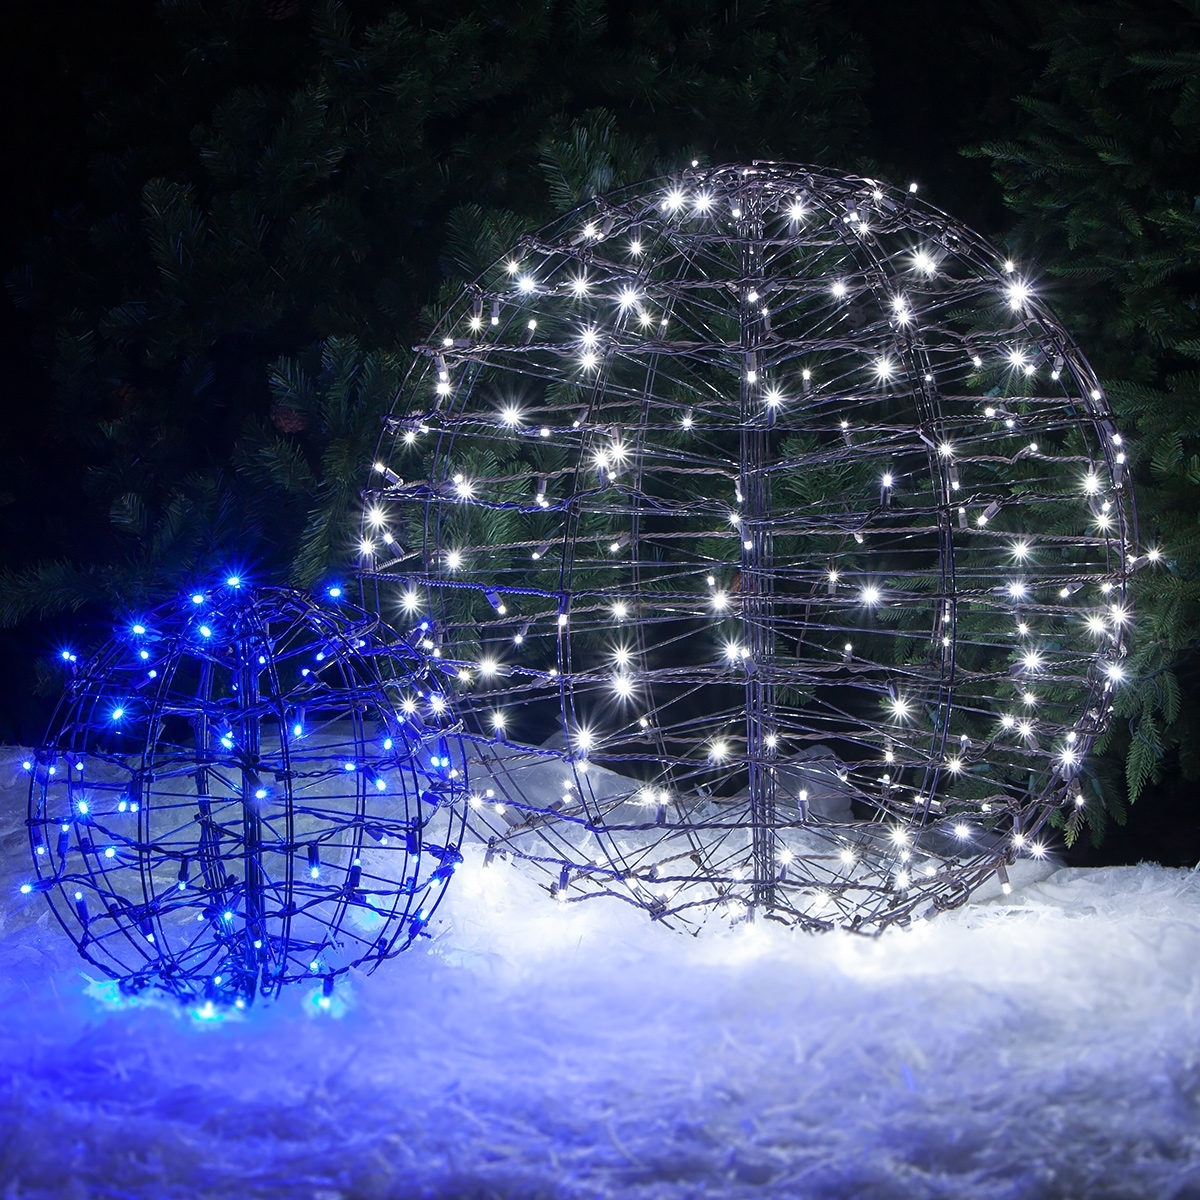 Outdoor Christmas Decorating Ideas – Yard Envy – Hanging Christmas Pertaining To Widely Used Outdoor Hanging Christmas Light Balls (View 17 of 20)